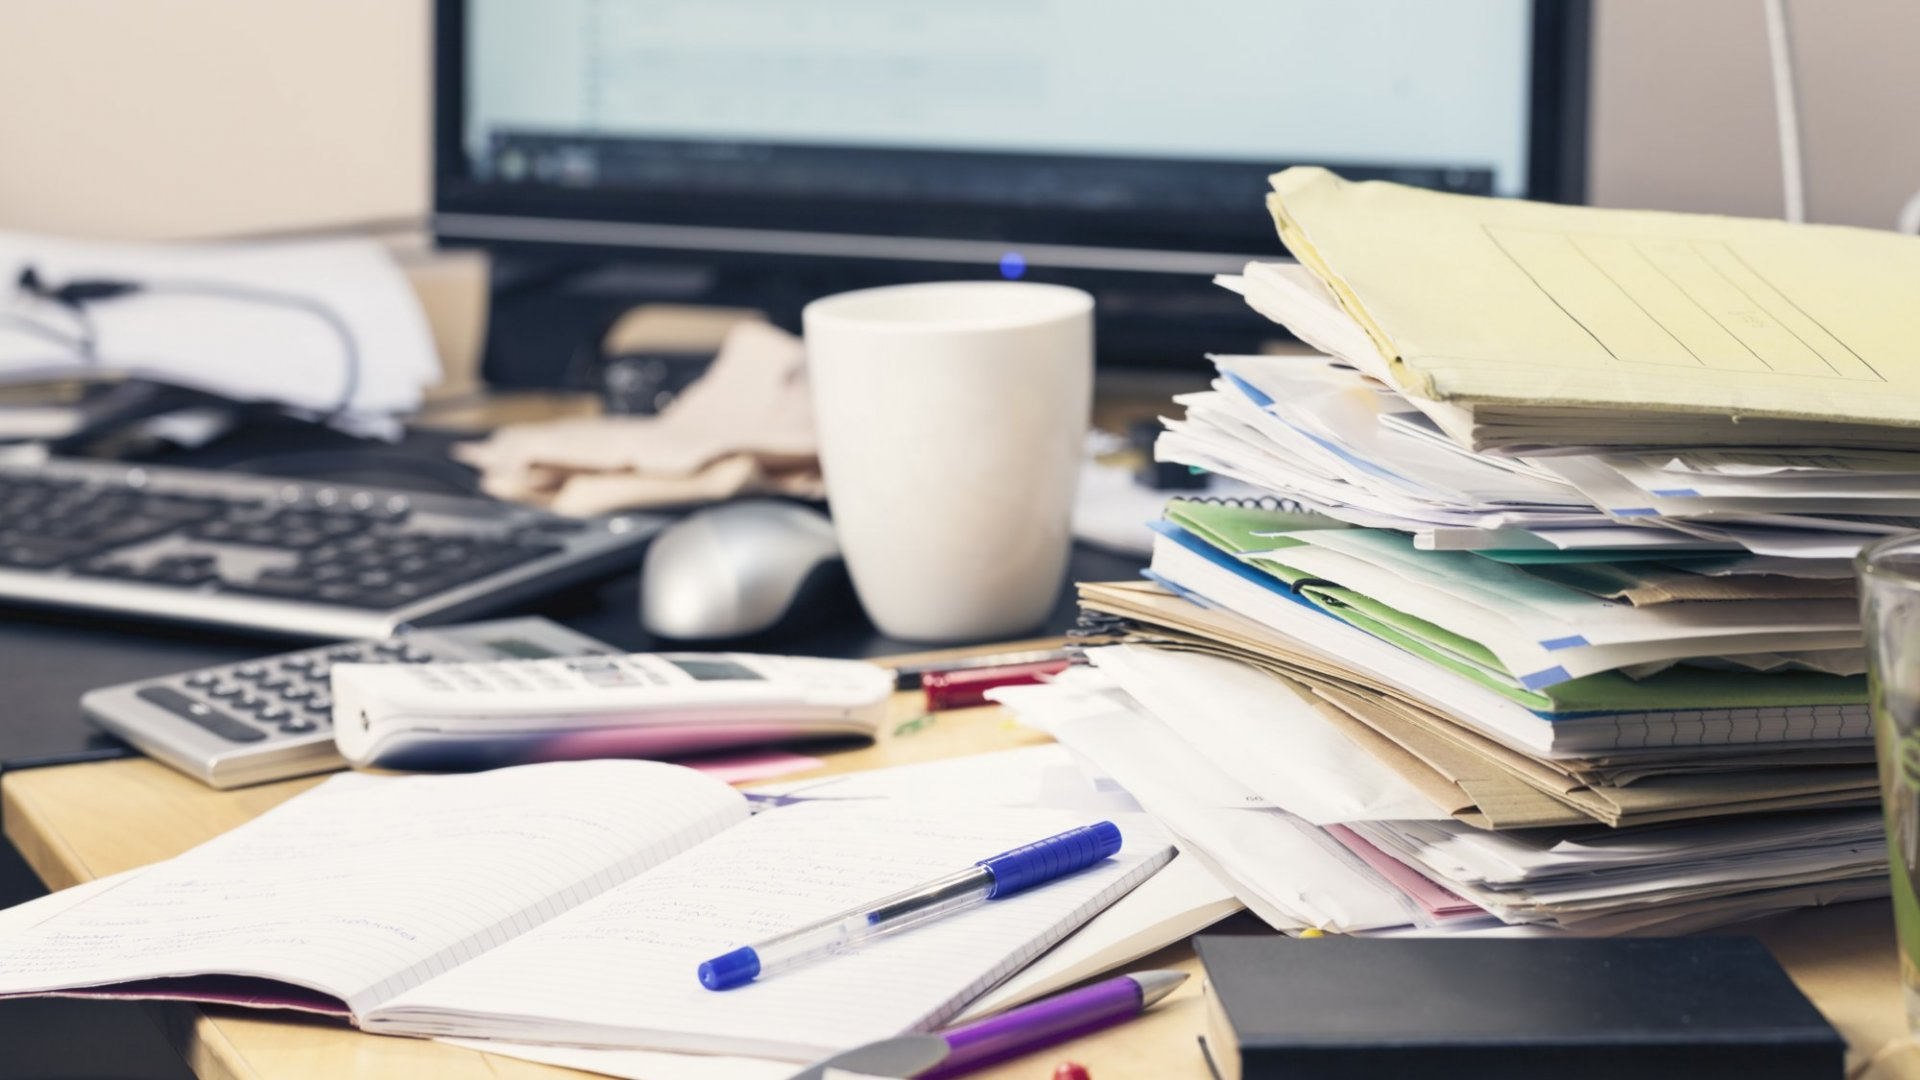 The Negative Relationship Between a Messy Desk and Productivity